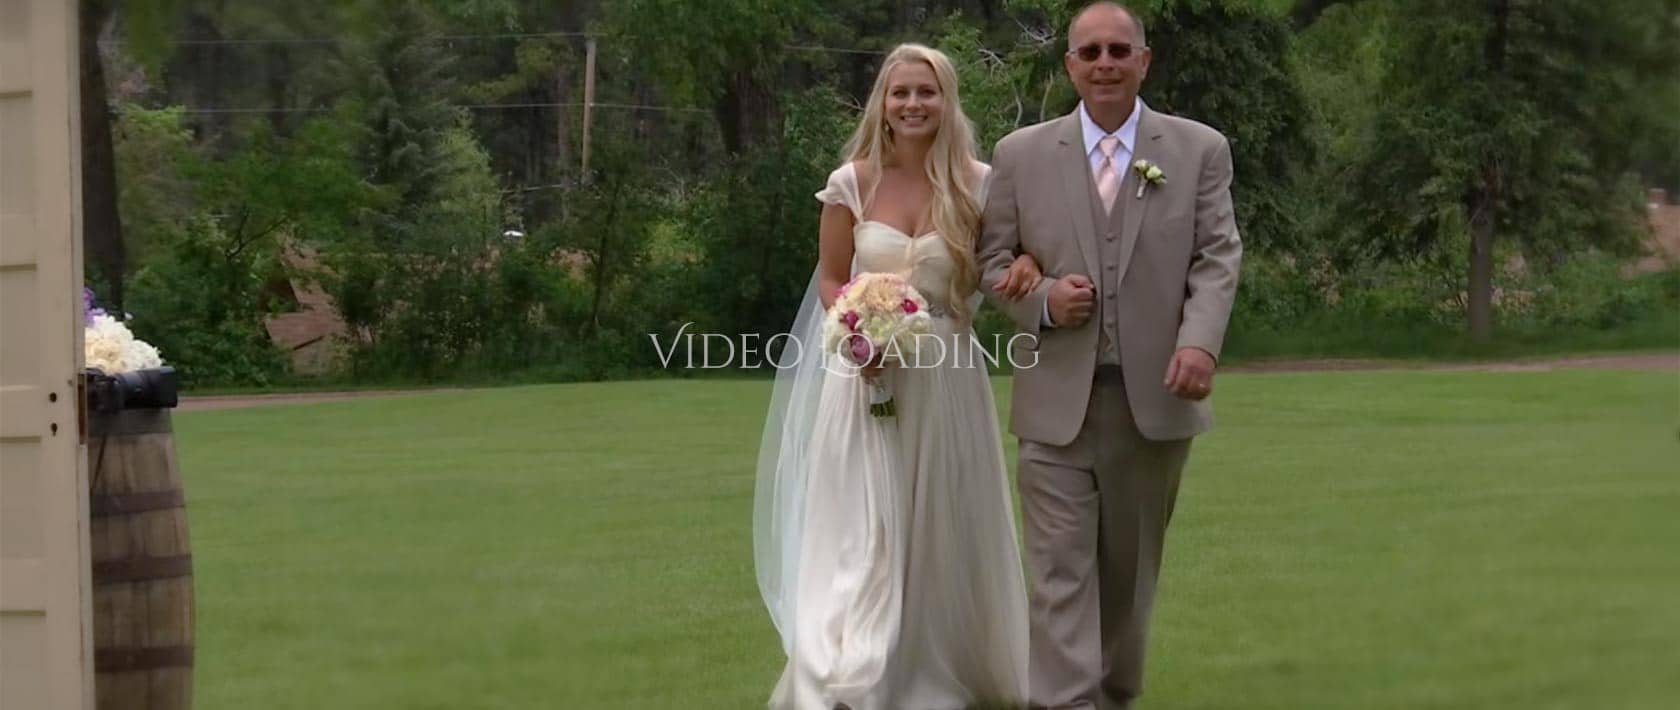 video loading wedding page